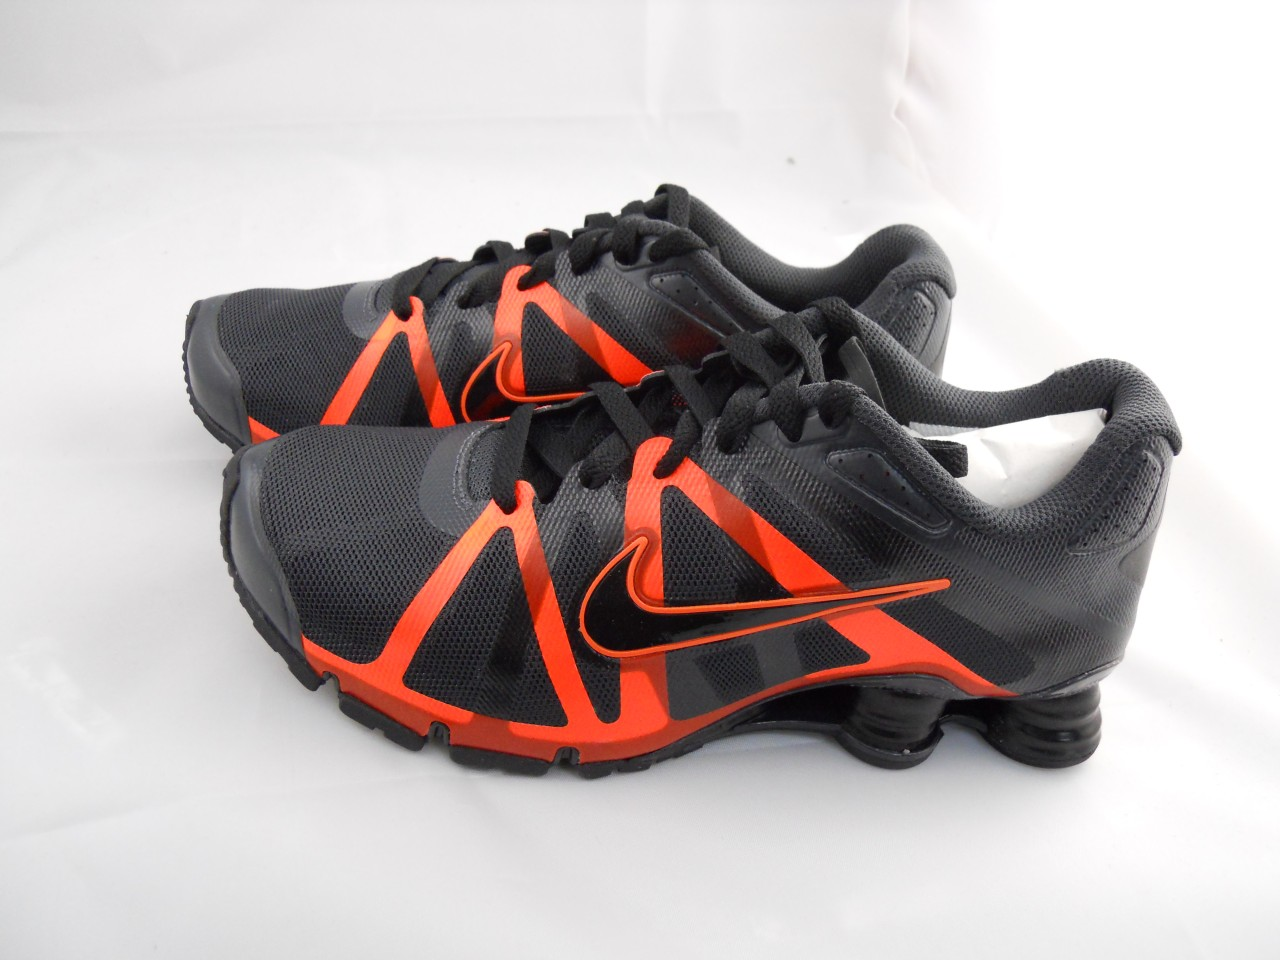 683a0f9a29f New Mens Nike Shox Roadster 487604 008 Anthracite Black Total Orange